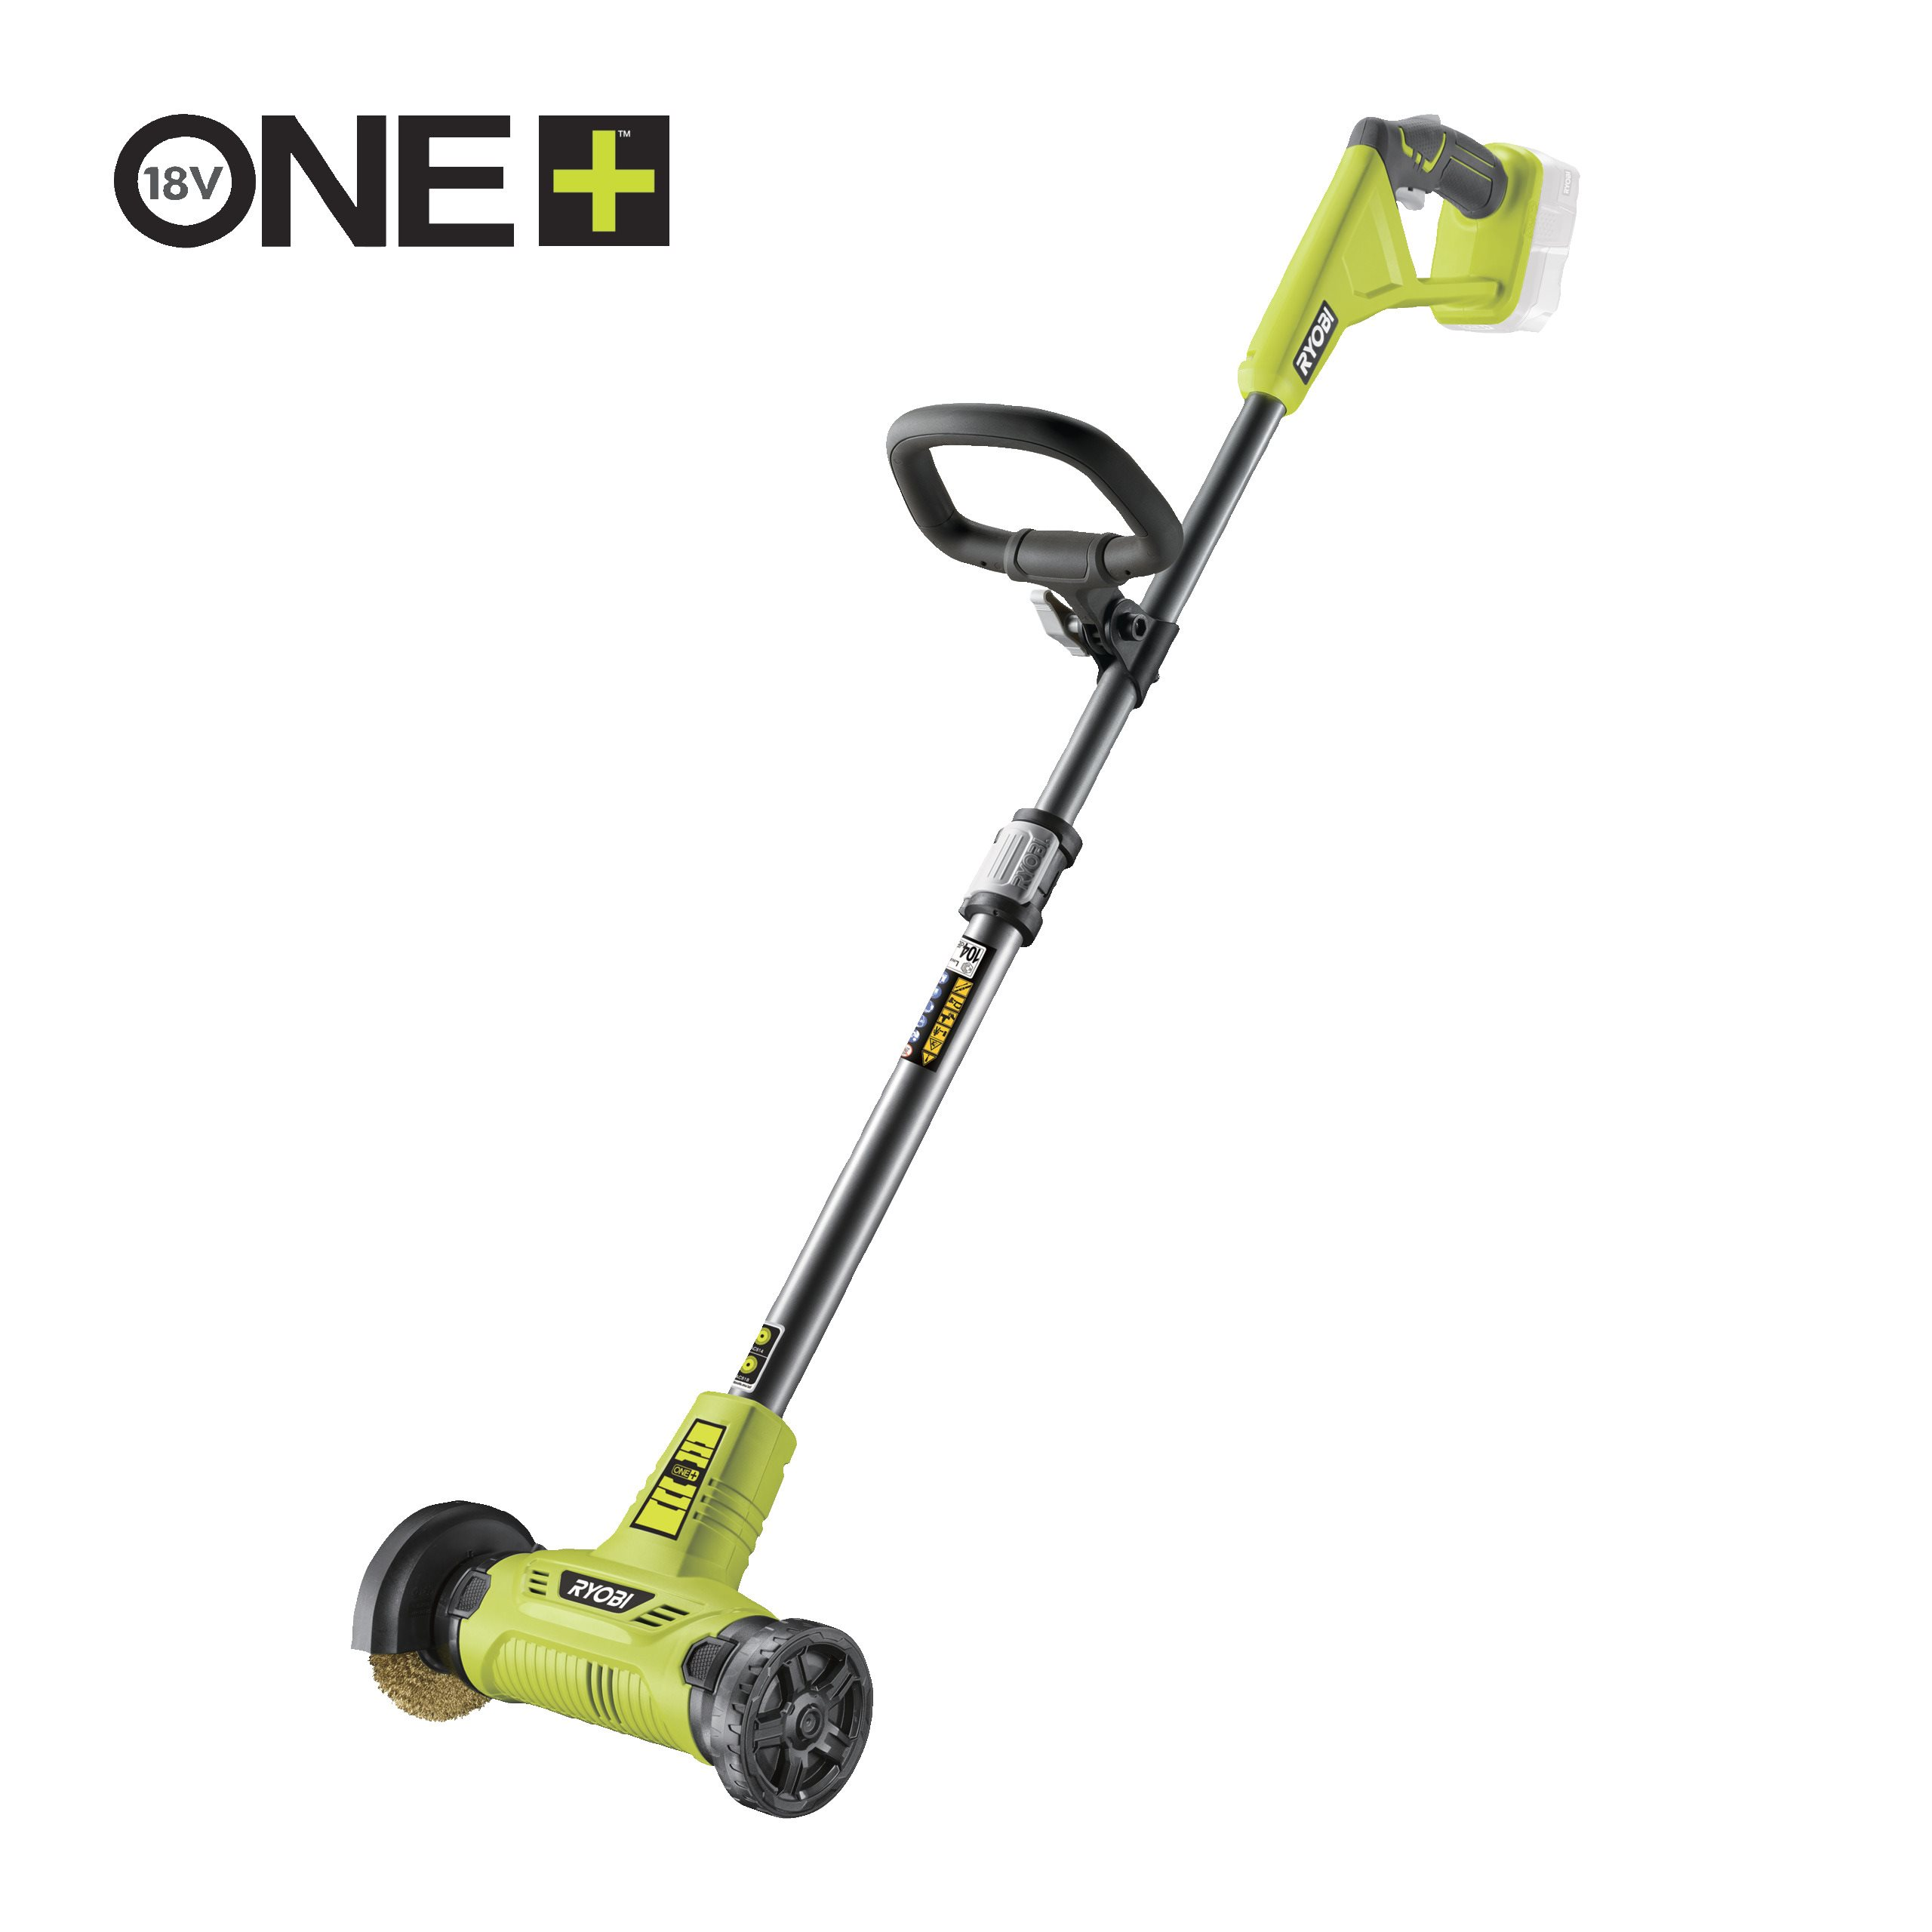 18V Cordless Patio Cleaner - Wire Brush